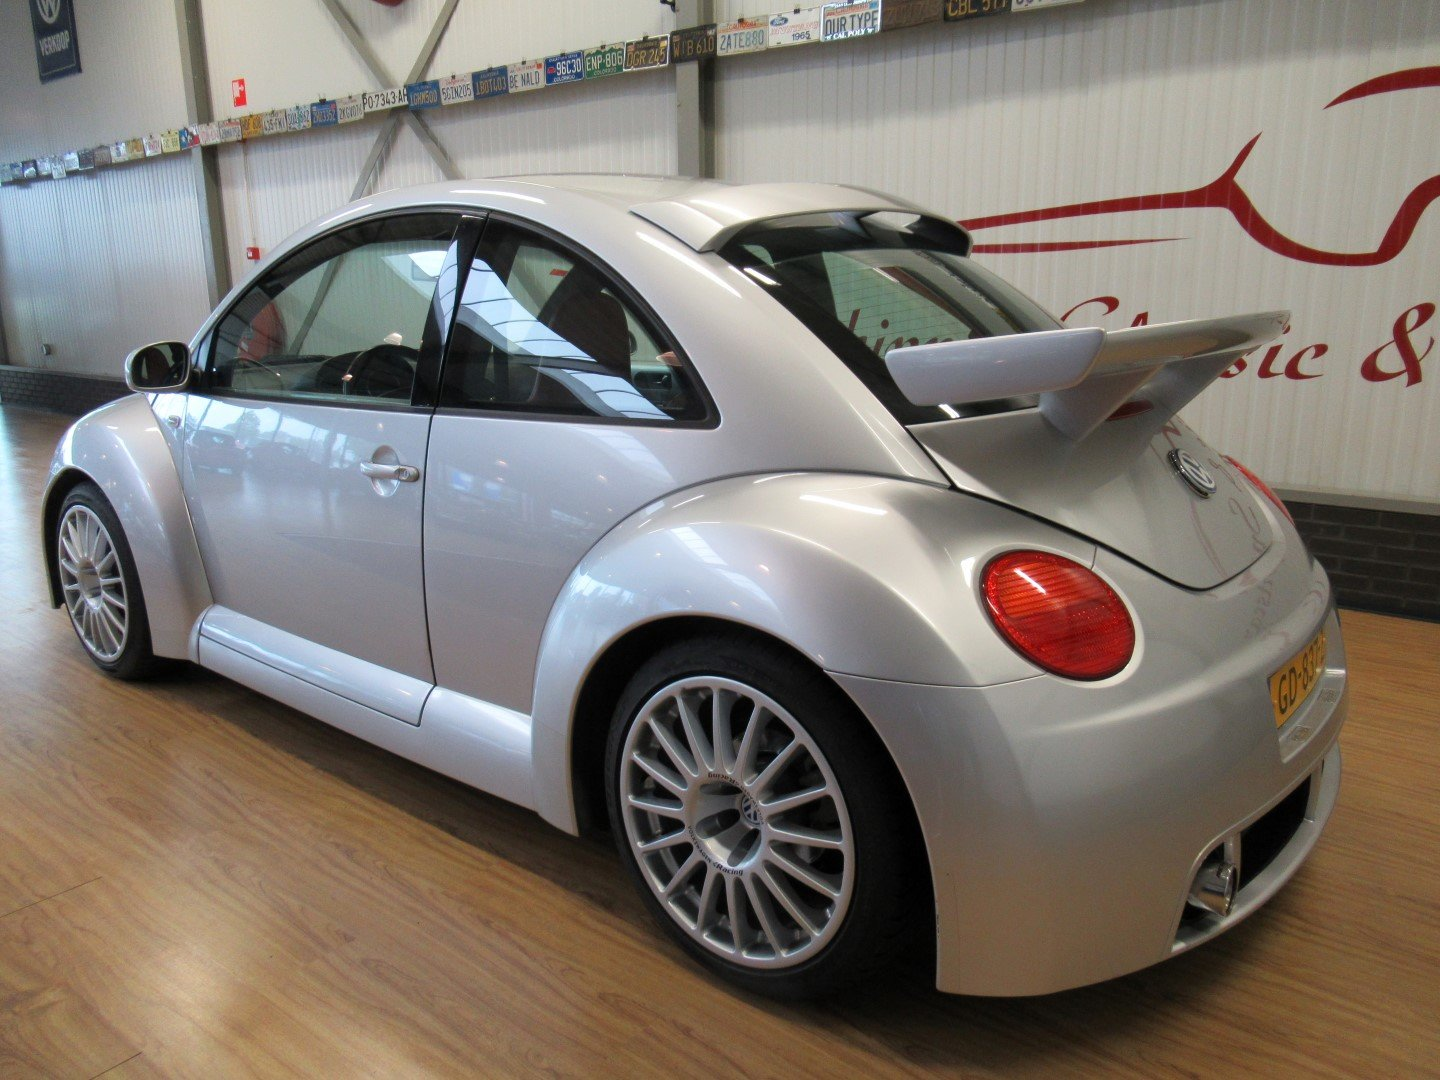 2002 Volkswagen Beetle RSI Limited Edition no. 56 of 250 For Sale (picture 4 of 6)